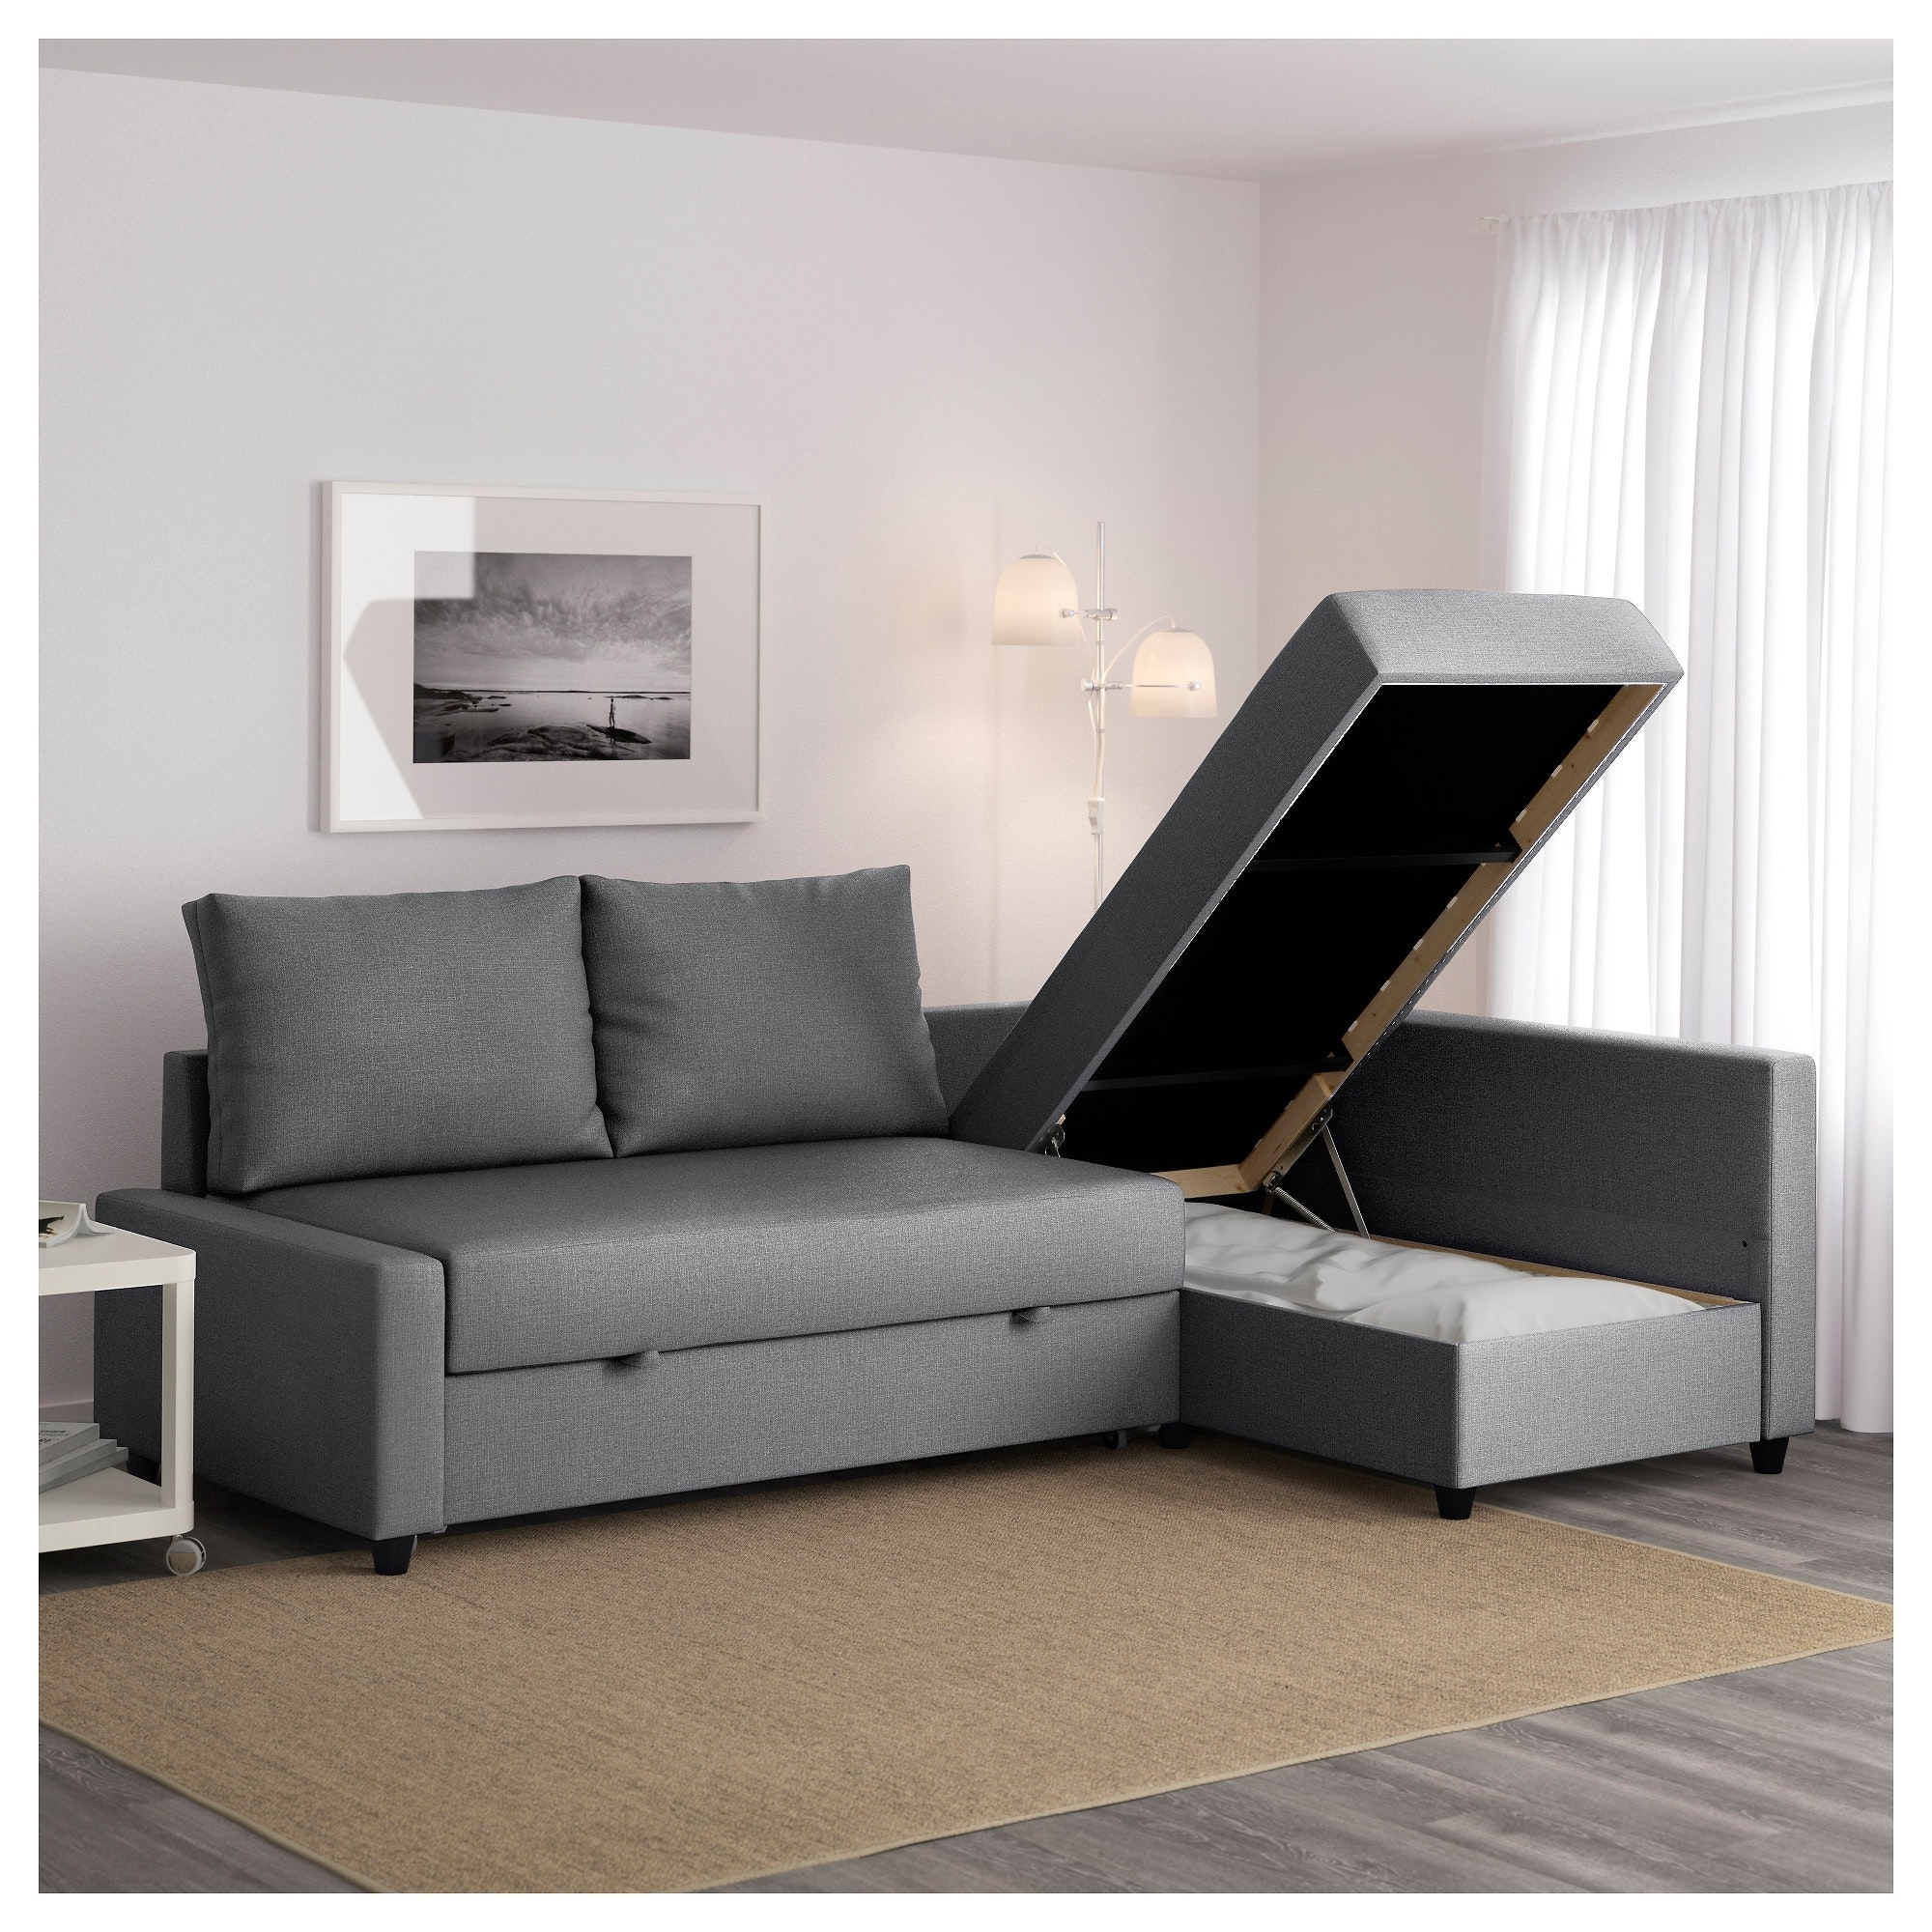 2019 Sofas Uk Pale Green Enchanting Friheten Corner Sofa Bed With Intended For Storage Sofas (View 3 of 20)